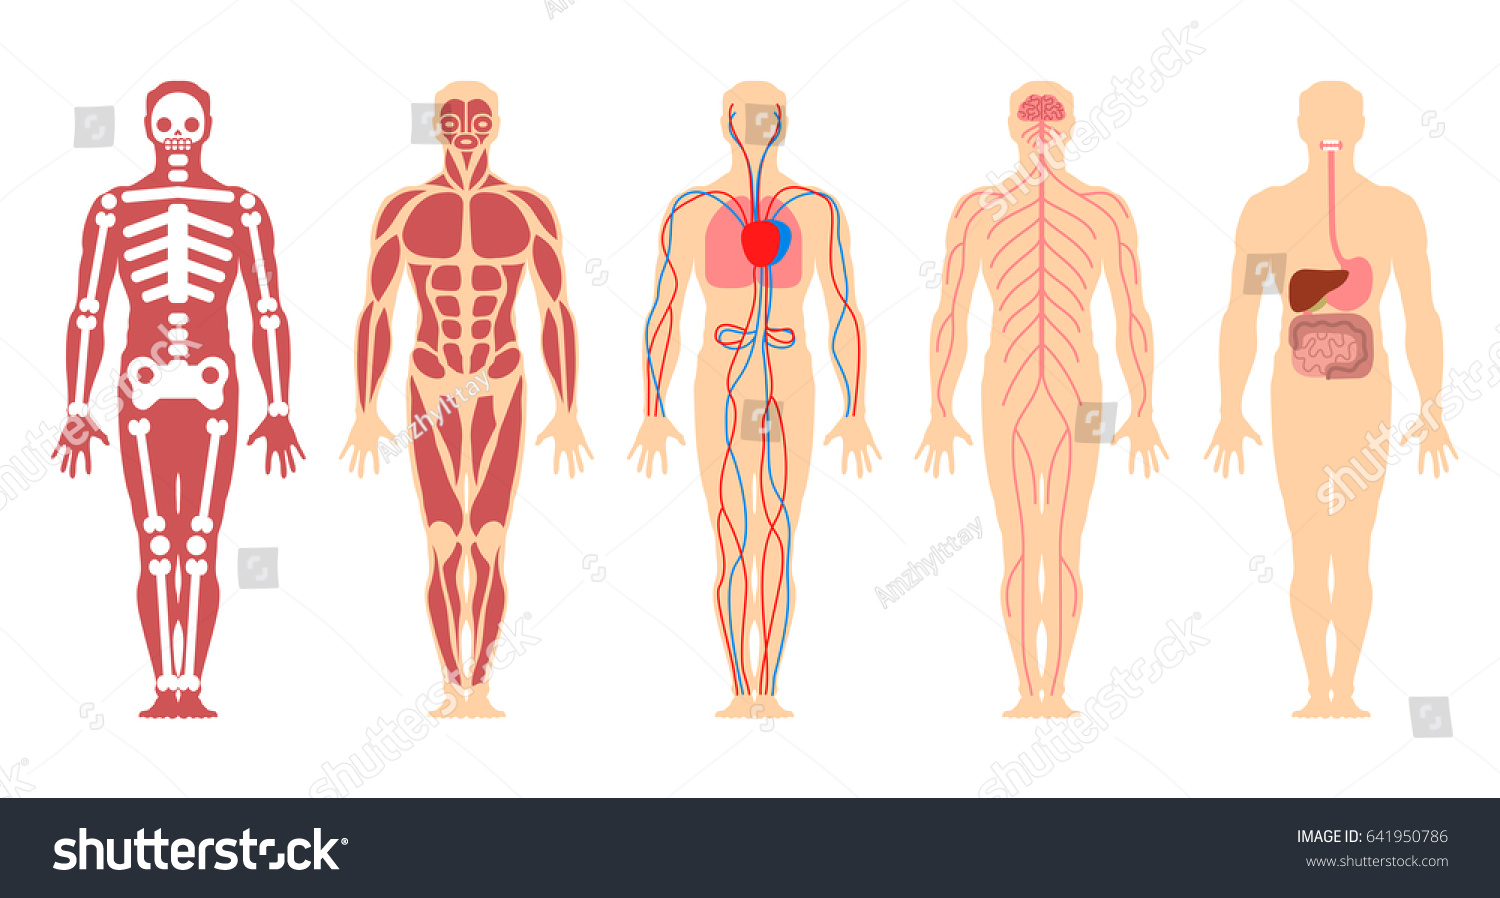 Different systems human body diagram illustration stock vector different systems of human body diagram illustration ccuart Images